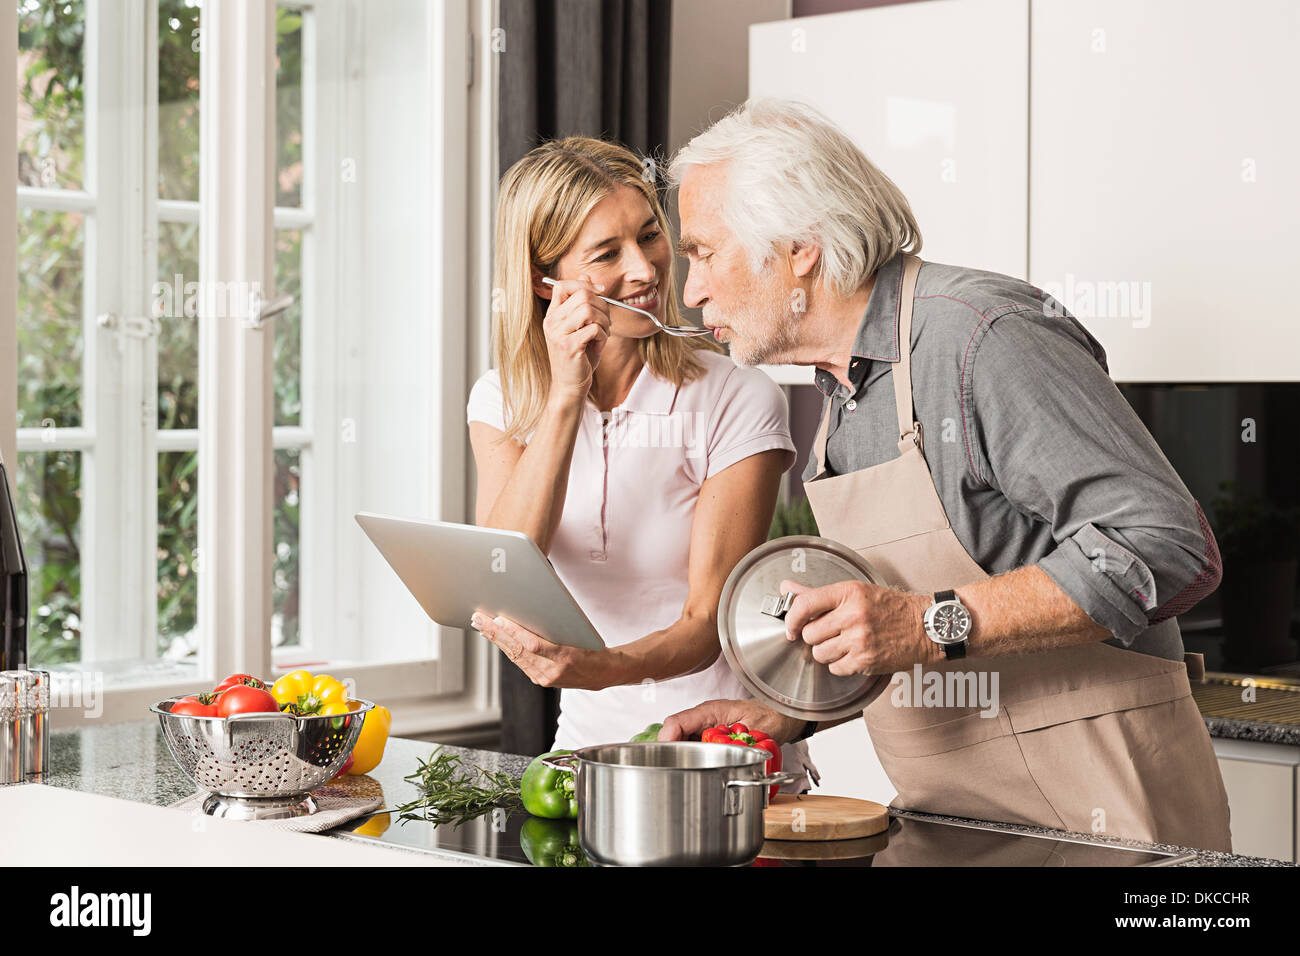 Senior man cooking with daughter, tasting food - Stock Image